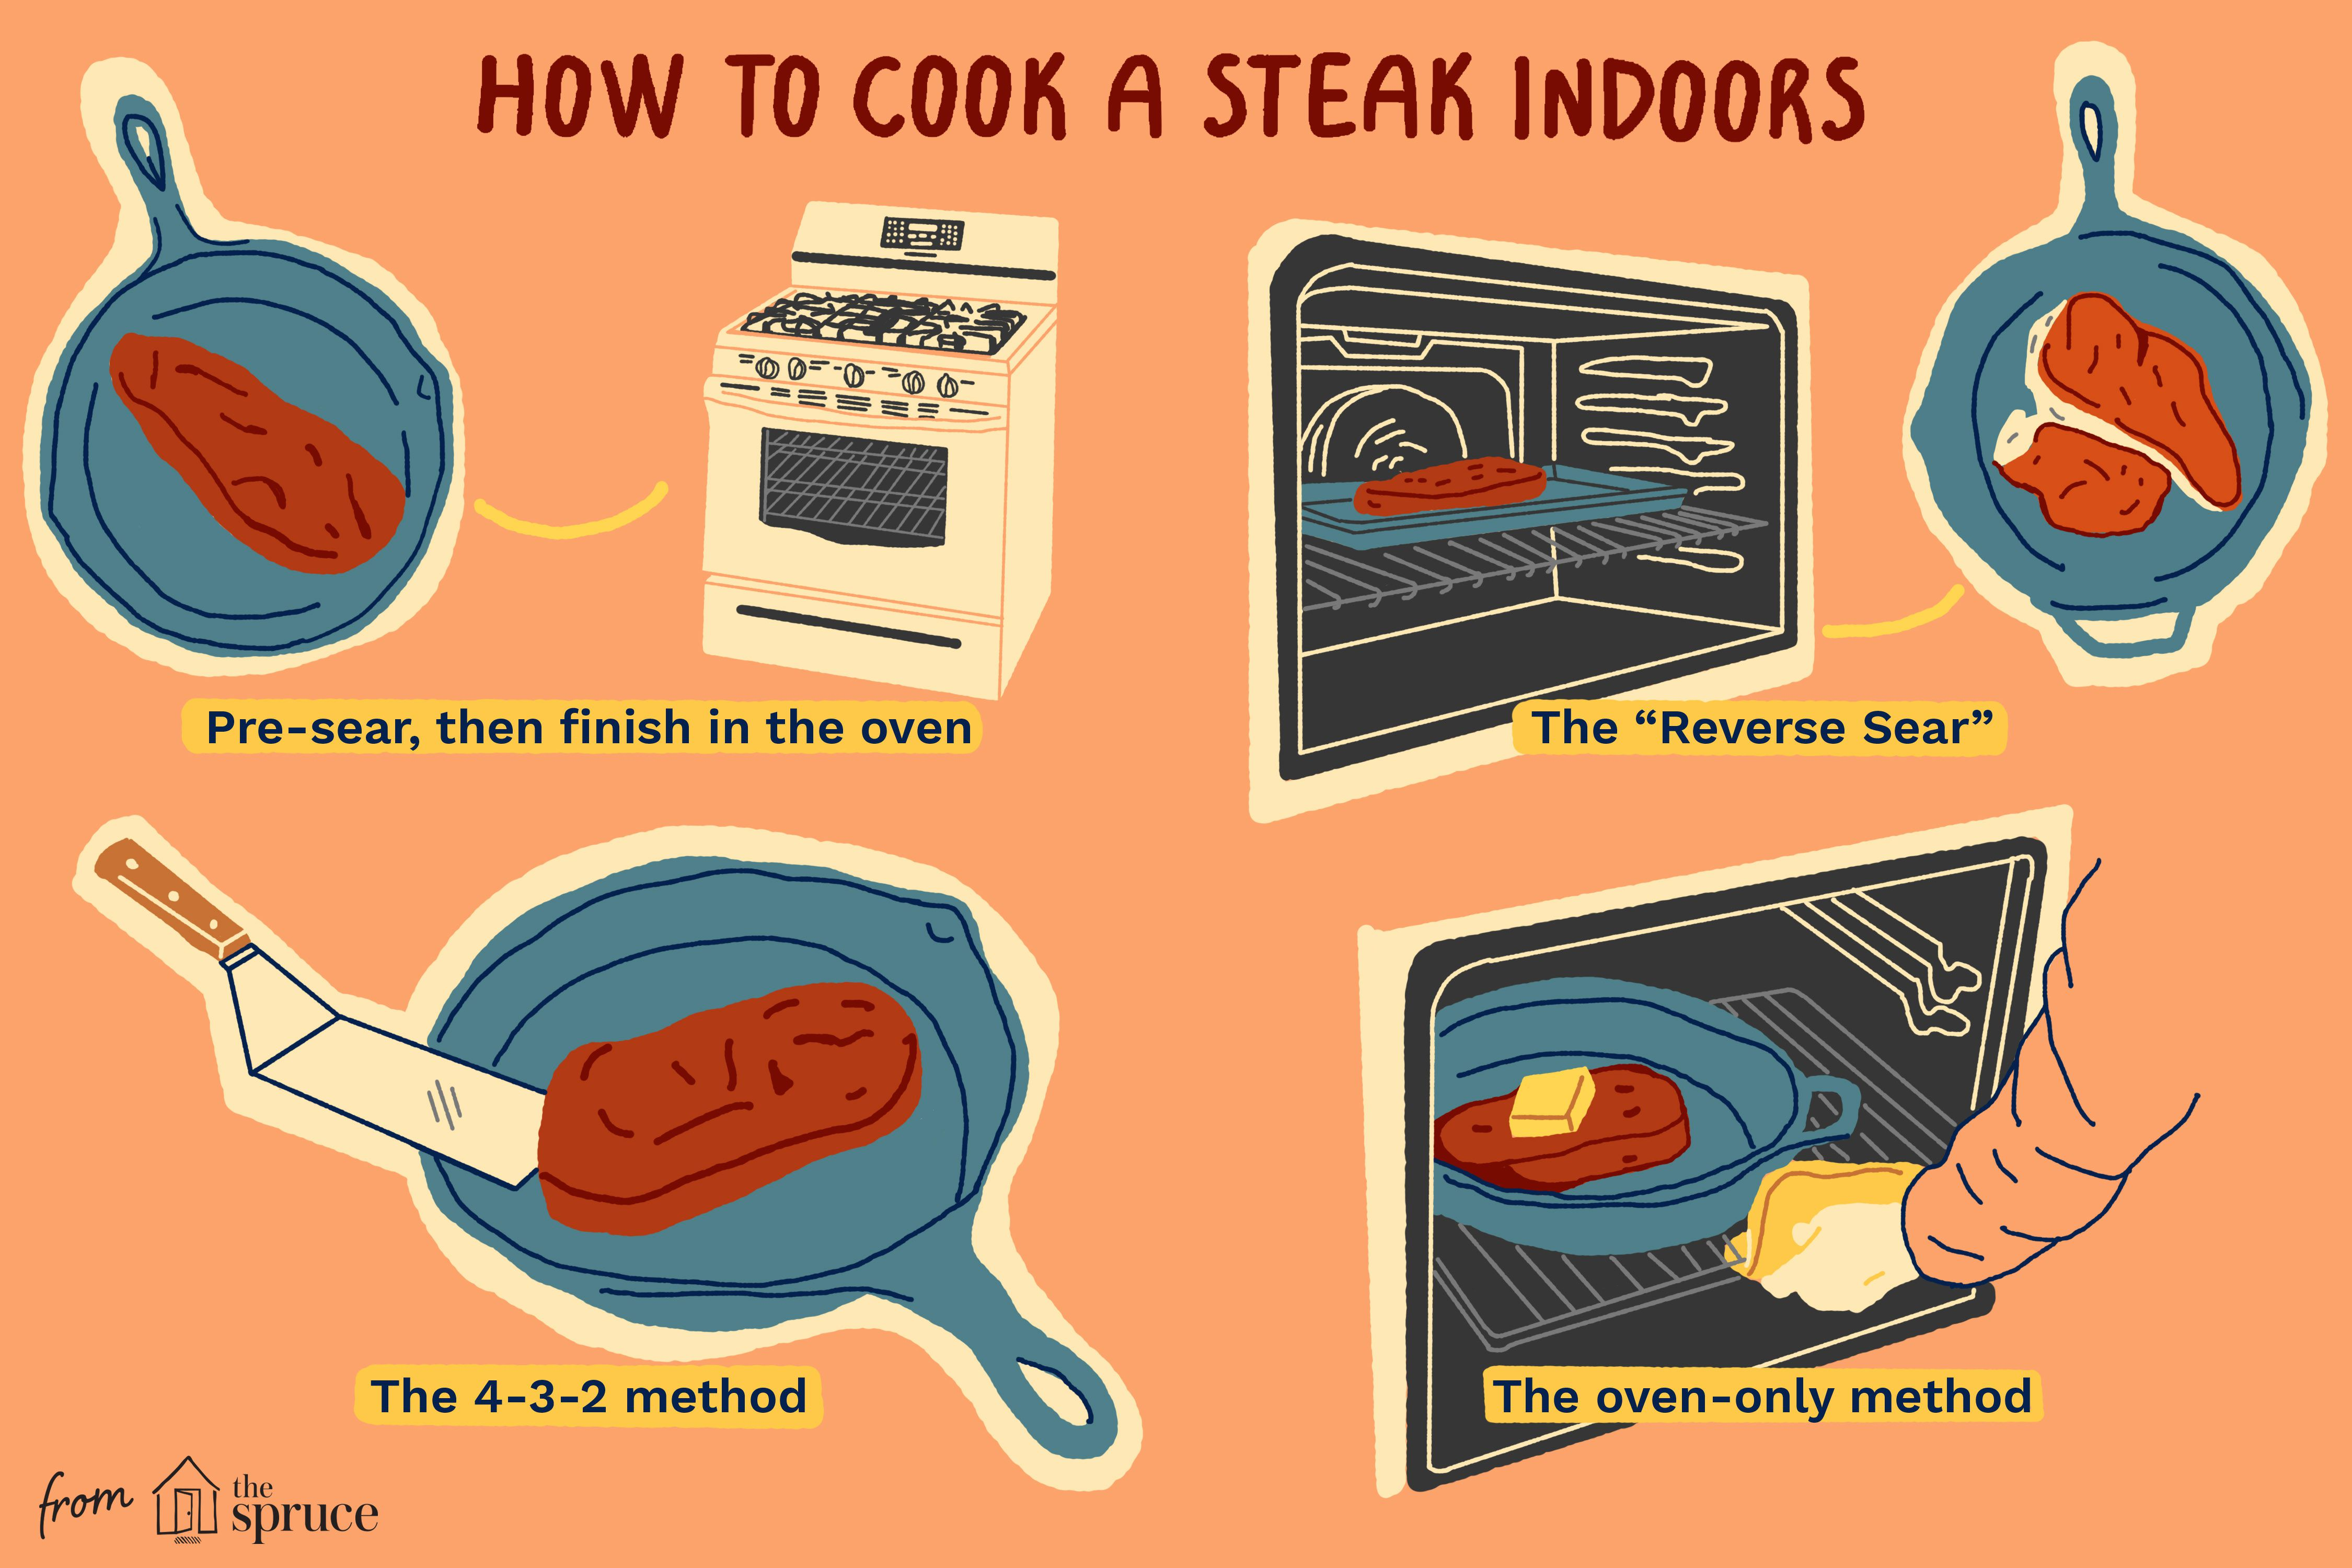 Illustration: How to Cook a Steak Indoors